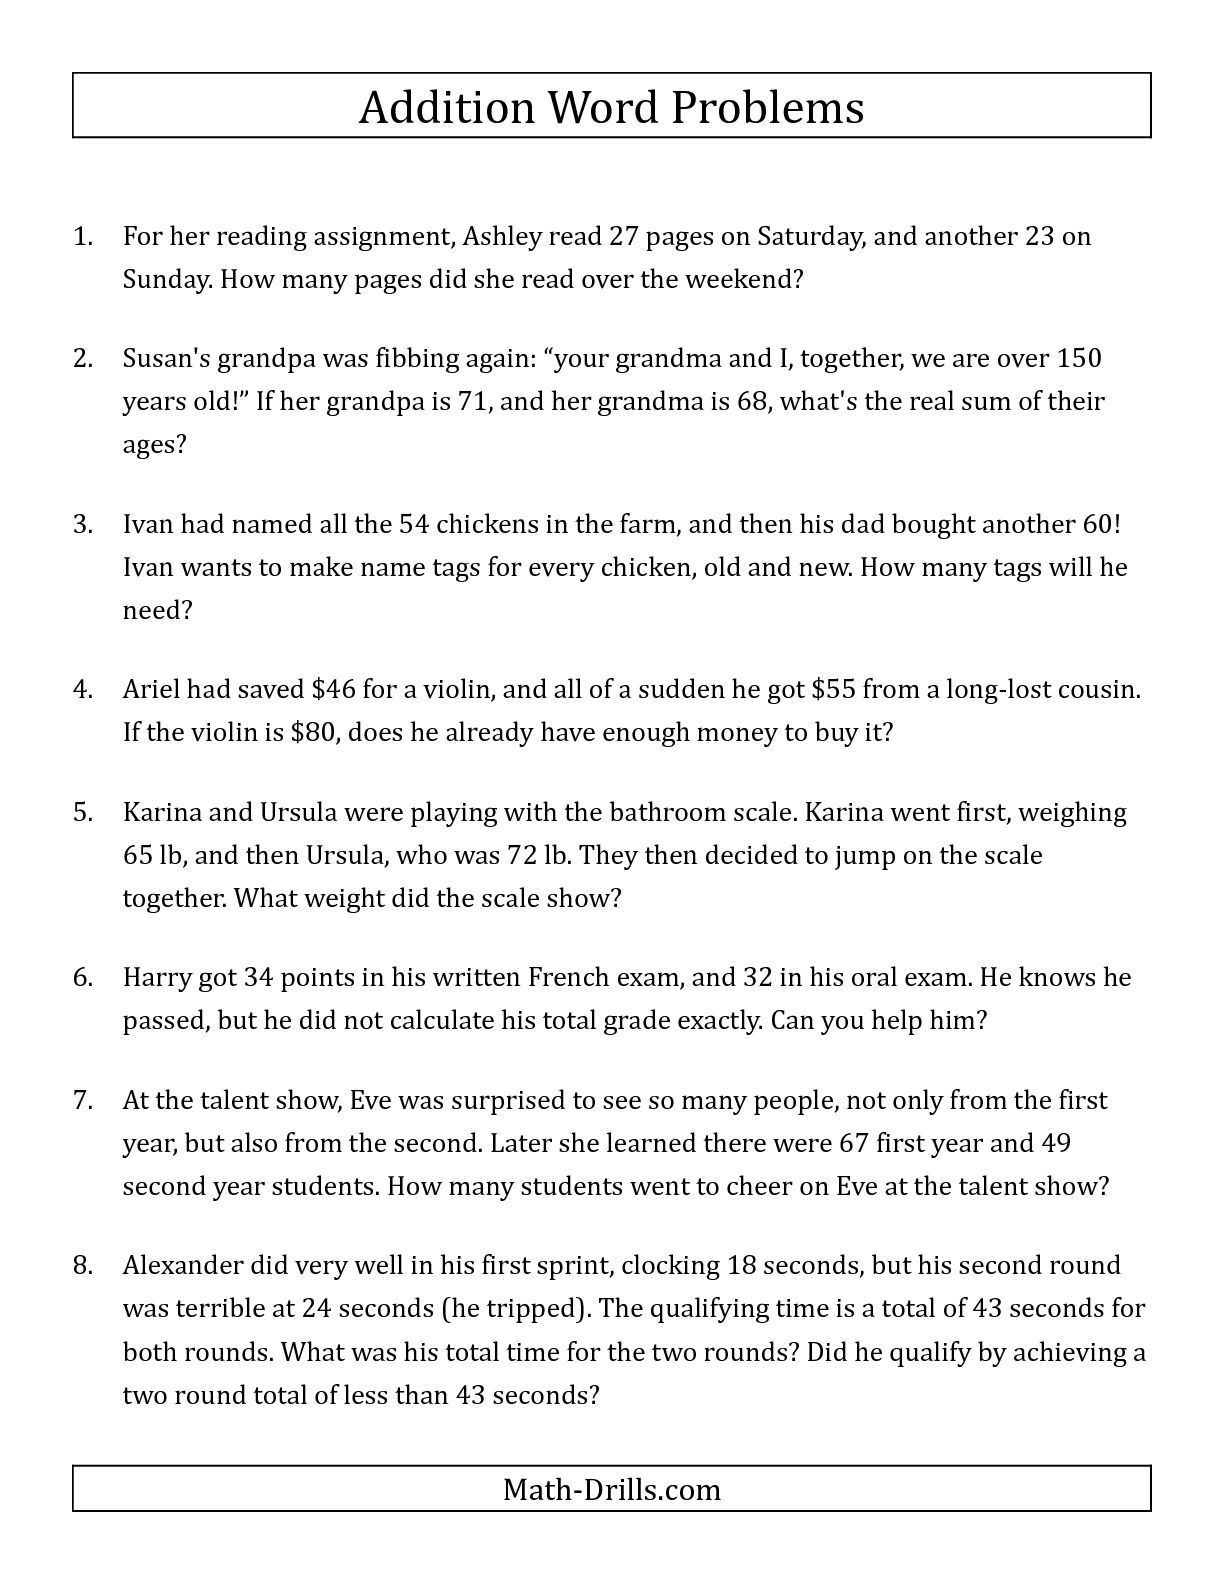 The Single-Step Addition Word Problems Using Two-Digit Numbers (A ...